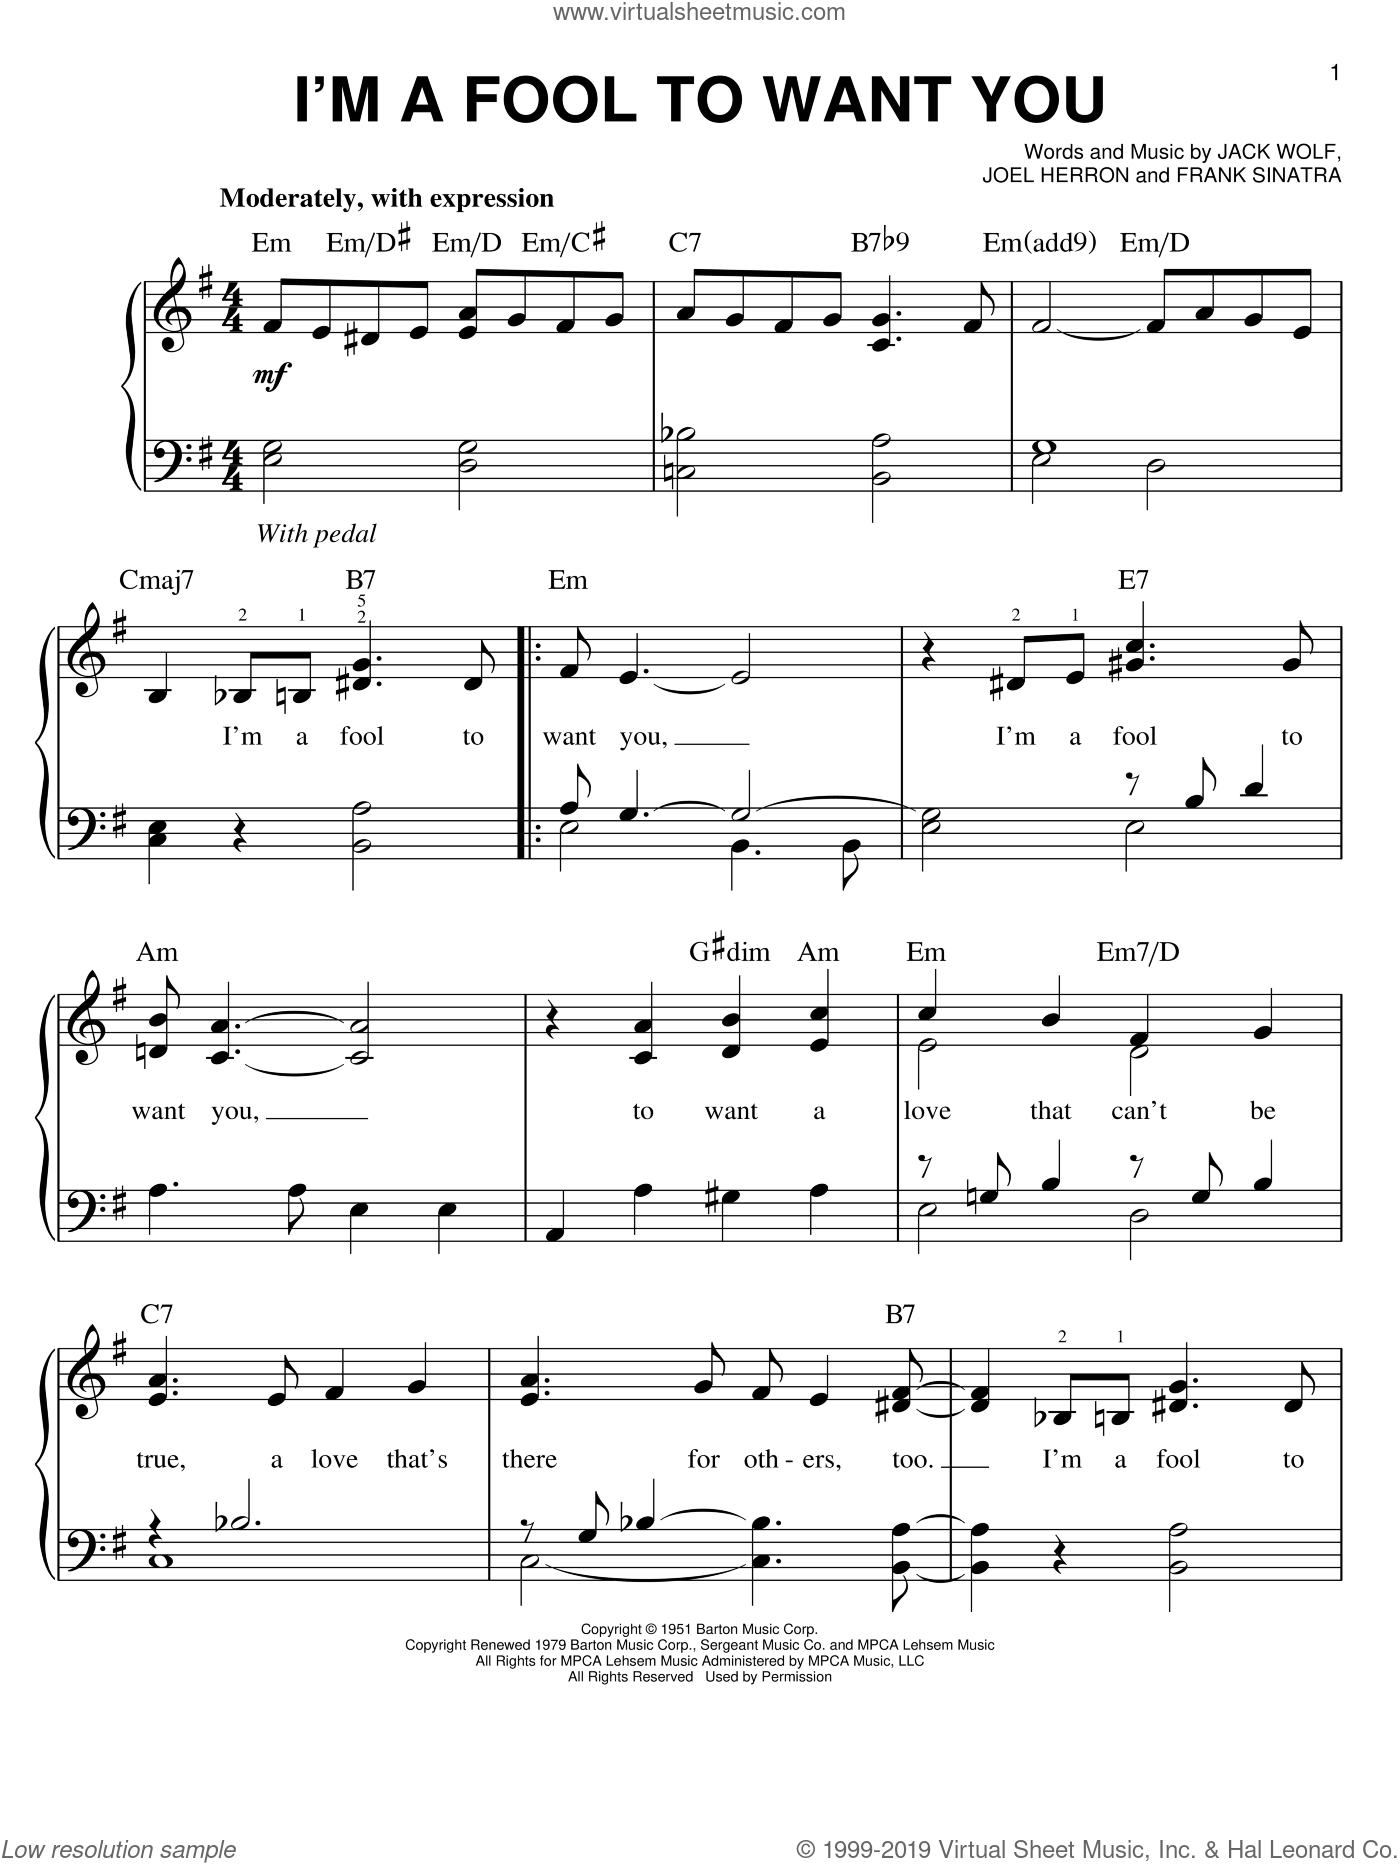 I'm A Fool To Want You sheet music for piano solo by Frank Sinatra, Jack Wolf and Joel Herron, easy skill level